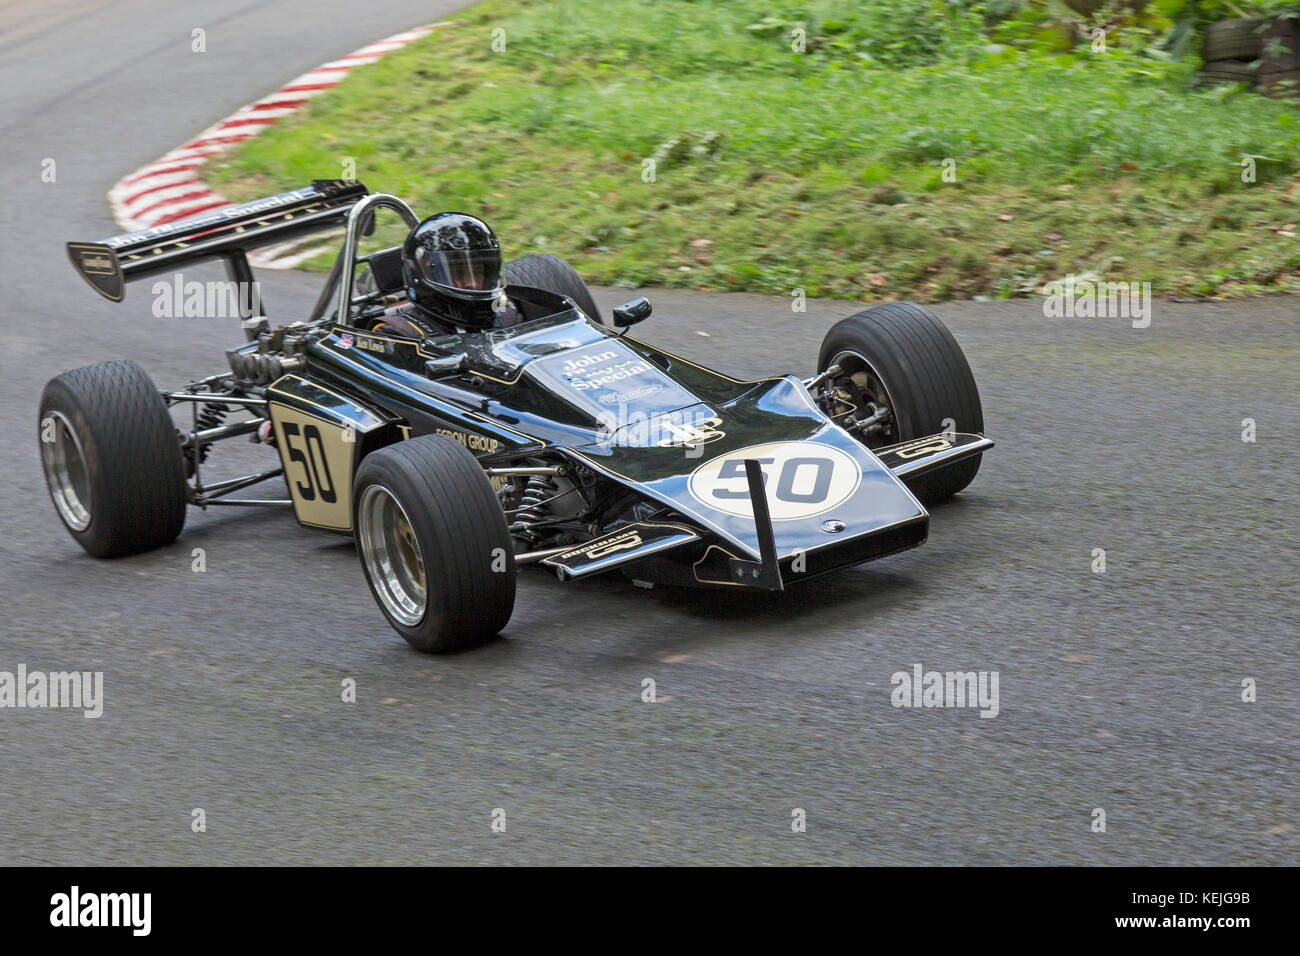 Lotus 61MX being driven by Kendrick Lewis at the Autumn Speed Finale at Shelsley Walsh Hill Climb, Worcestershire, - Stock Image